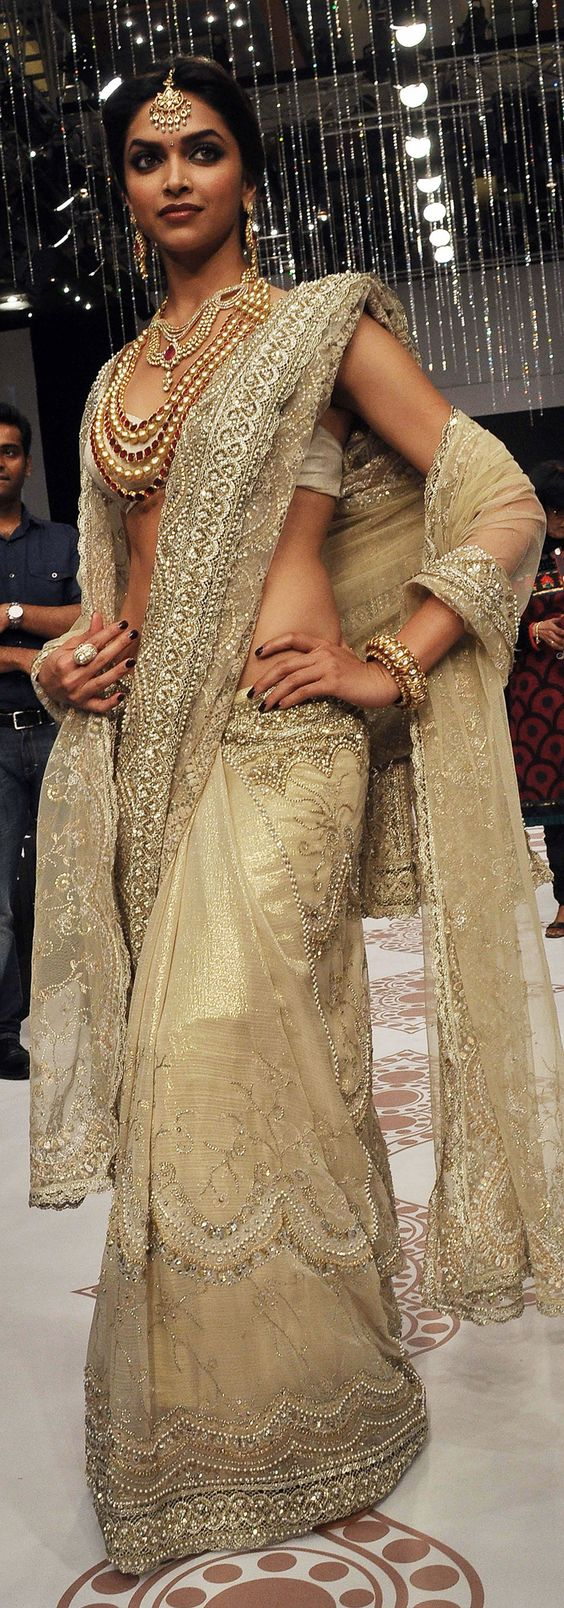 deepika padukone in silverish wedding saree